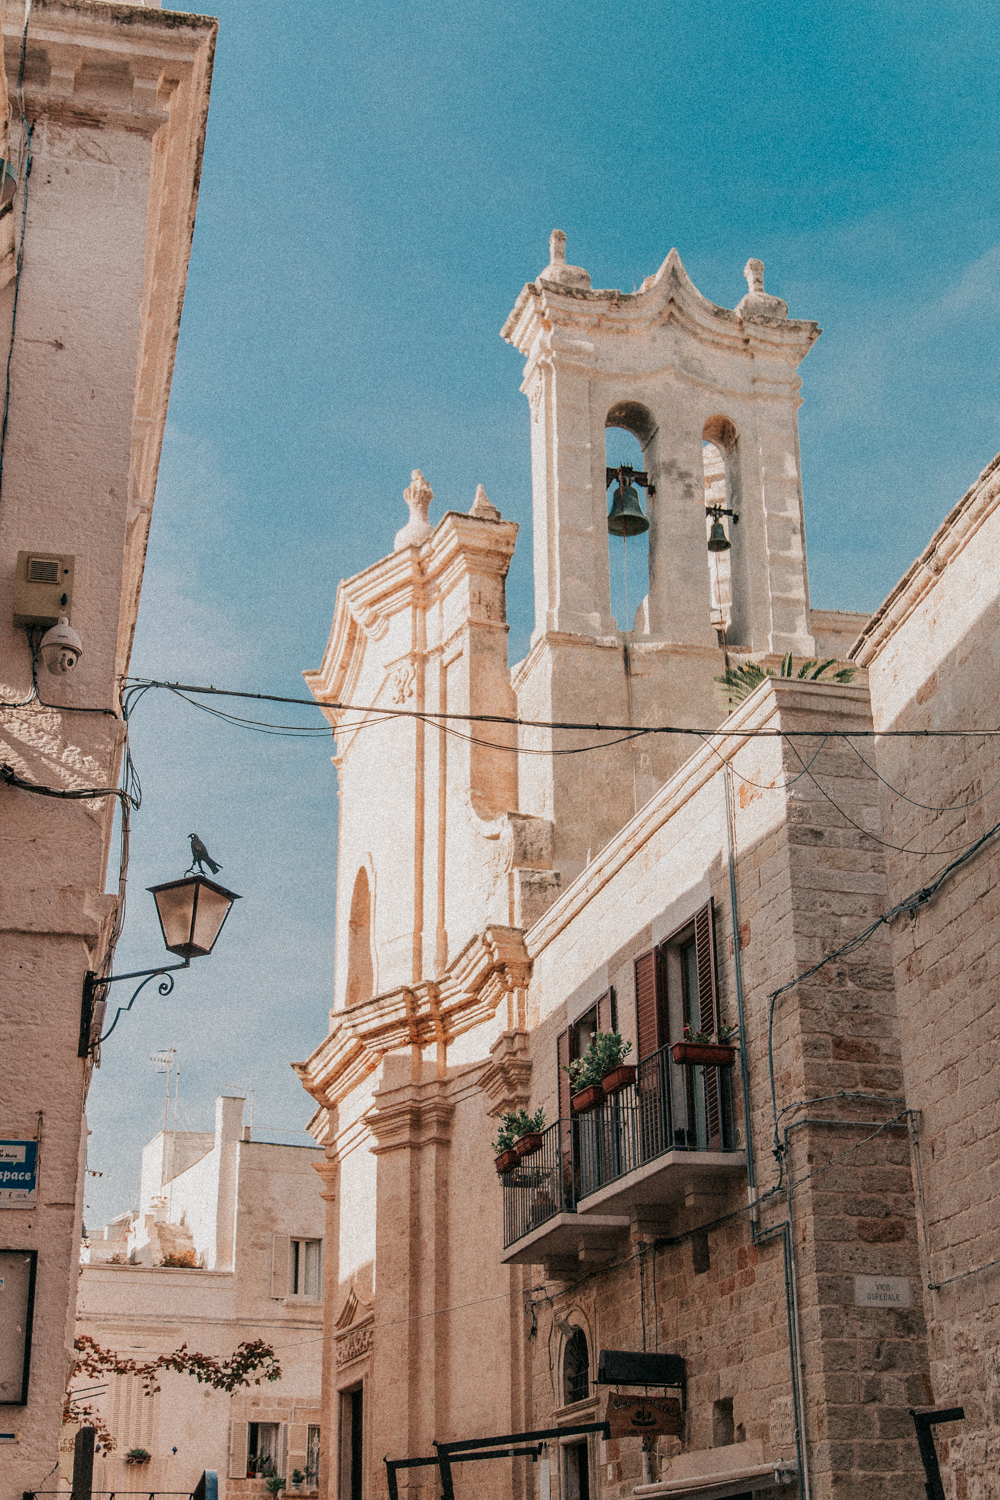 Ringing church bells in Polignano